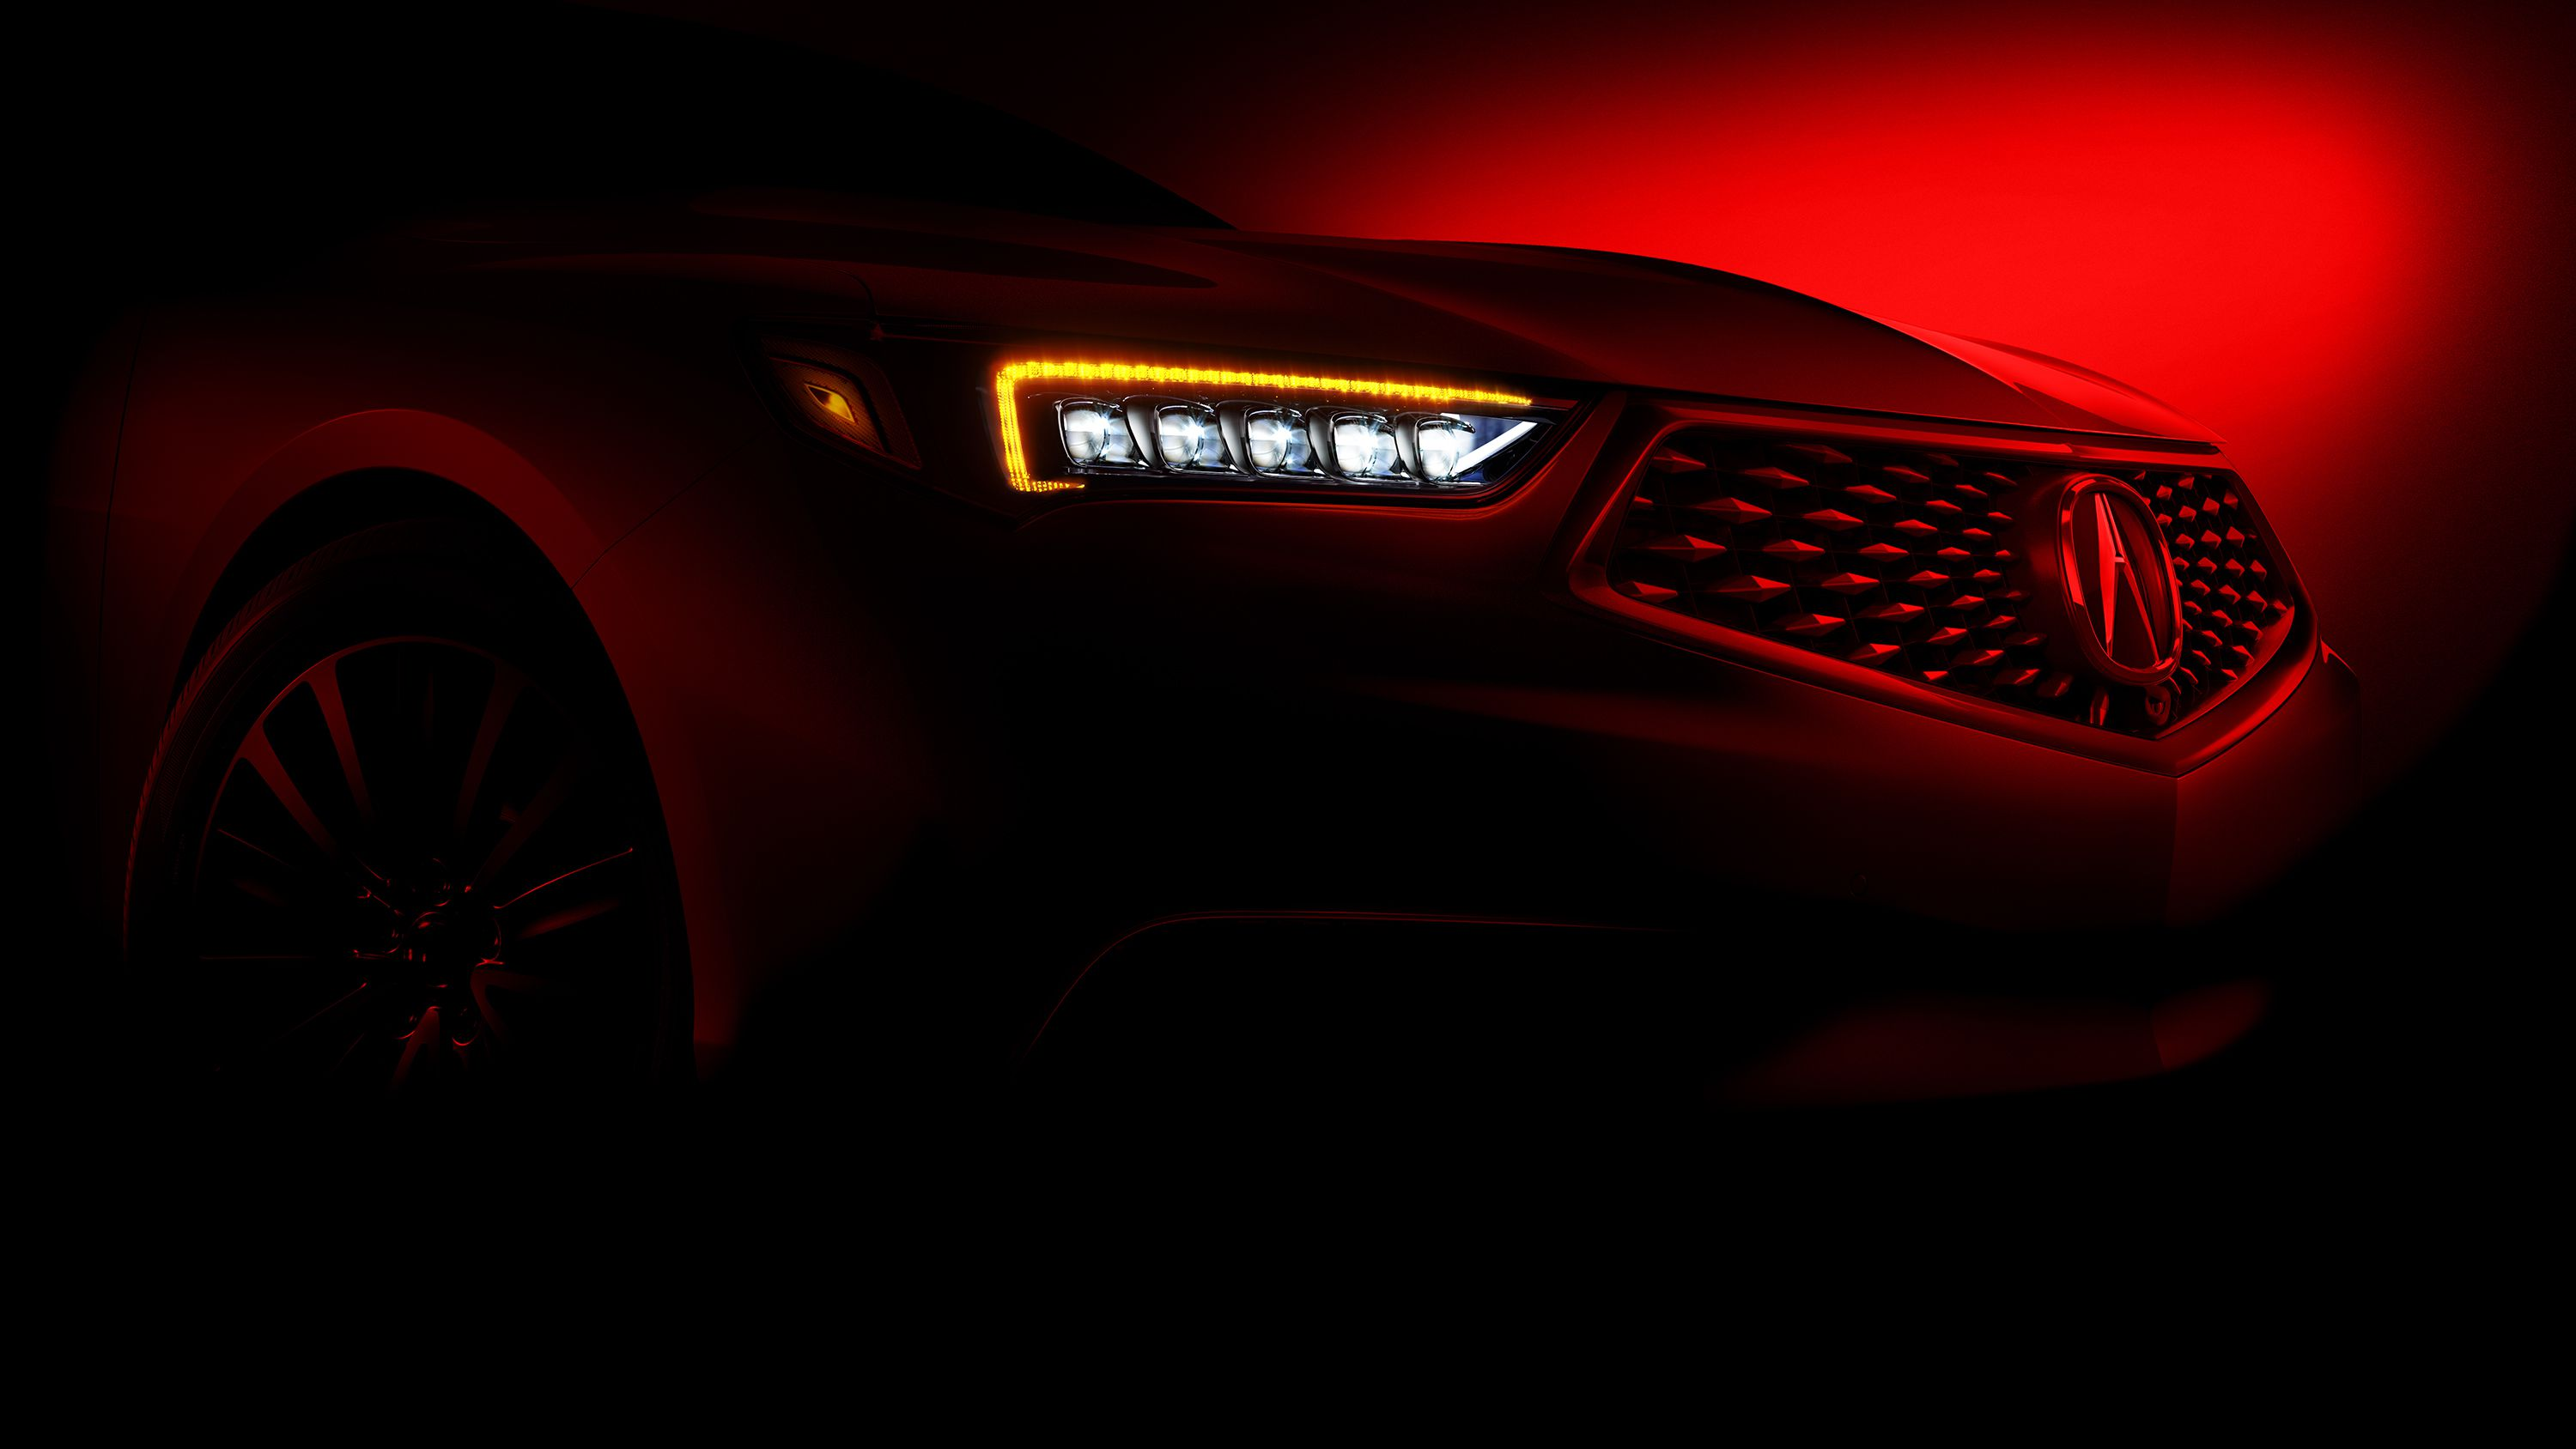 acura tlx computer background 319